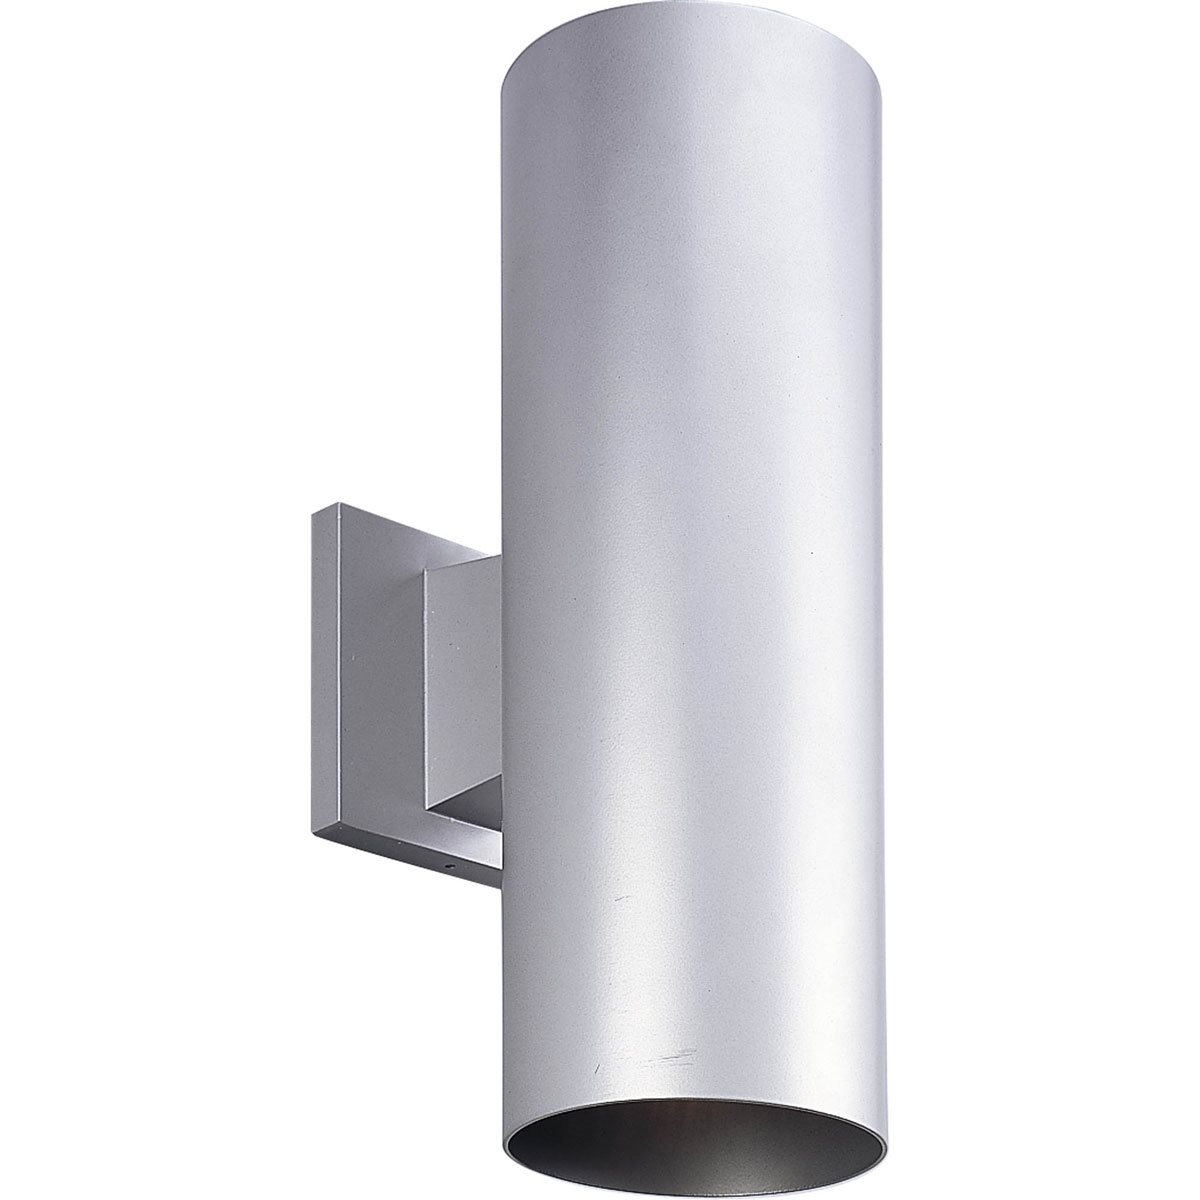 Progress Lighting P5675 5 Aluminum Cylinder Outdoor Wall Sconce PG P5675